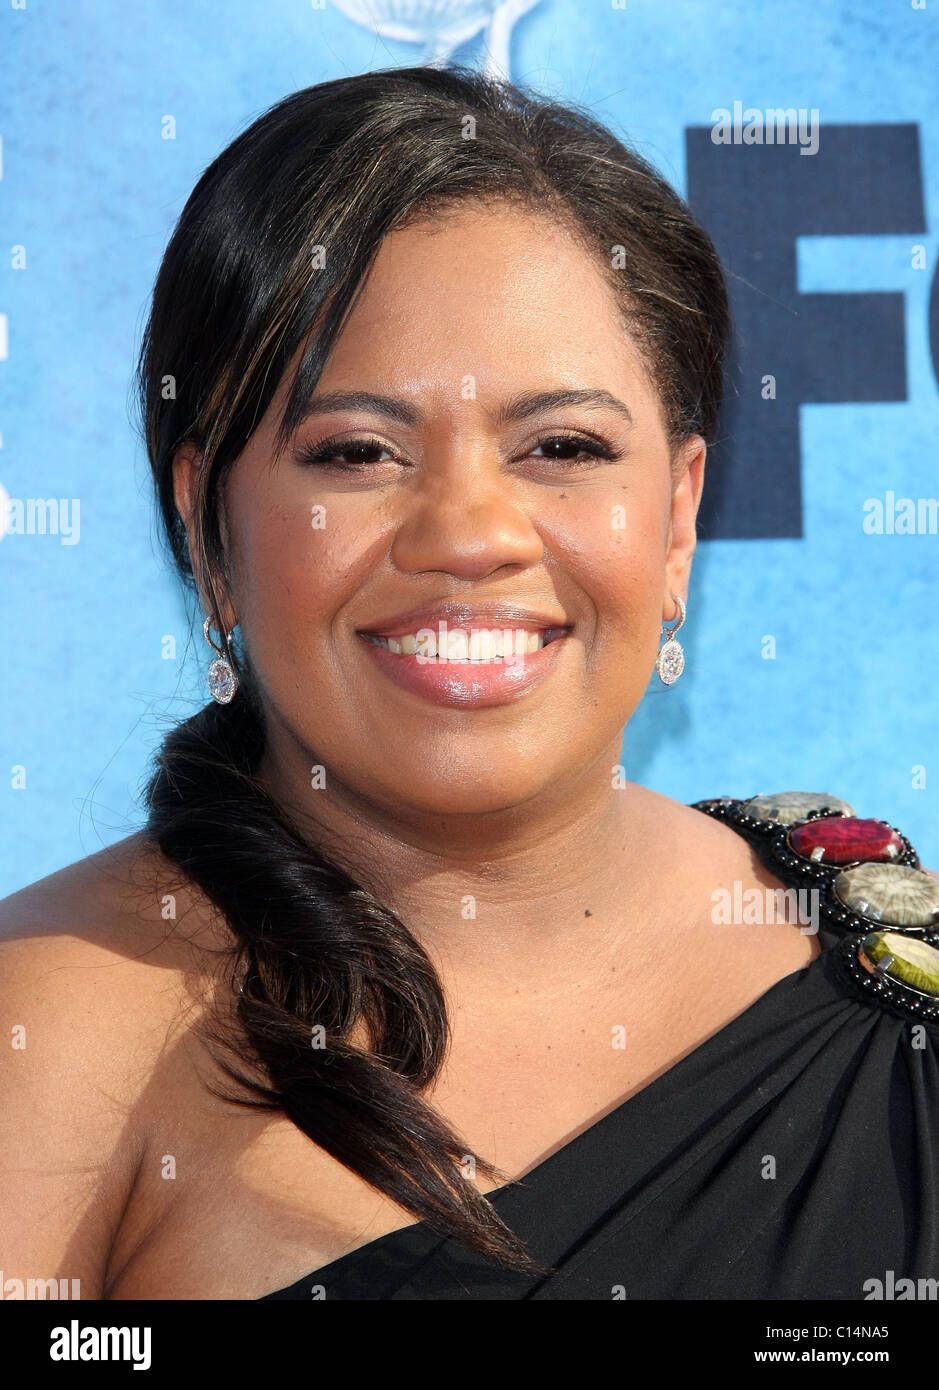 CHANDRA WILSON 42ND NAACP IMAGE AWARDS ARRIVALS DOWNTOWN LOS ANGELES CALIFORNIA USA 04 March 2011 - Stock Image